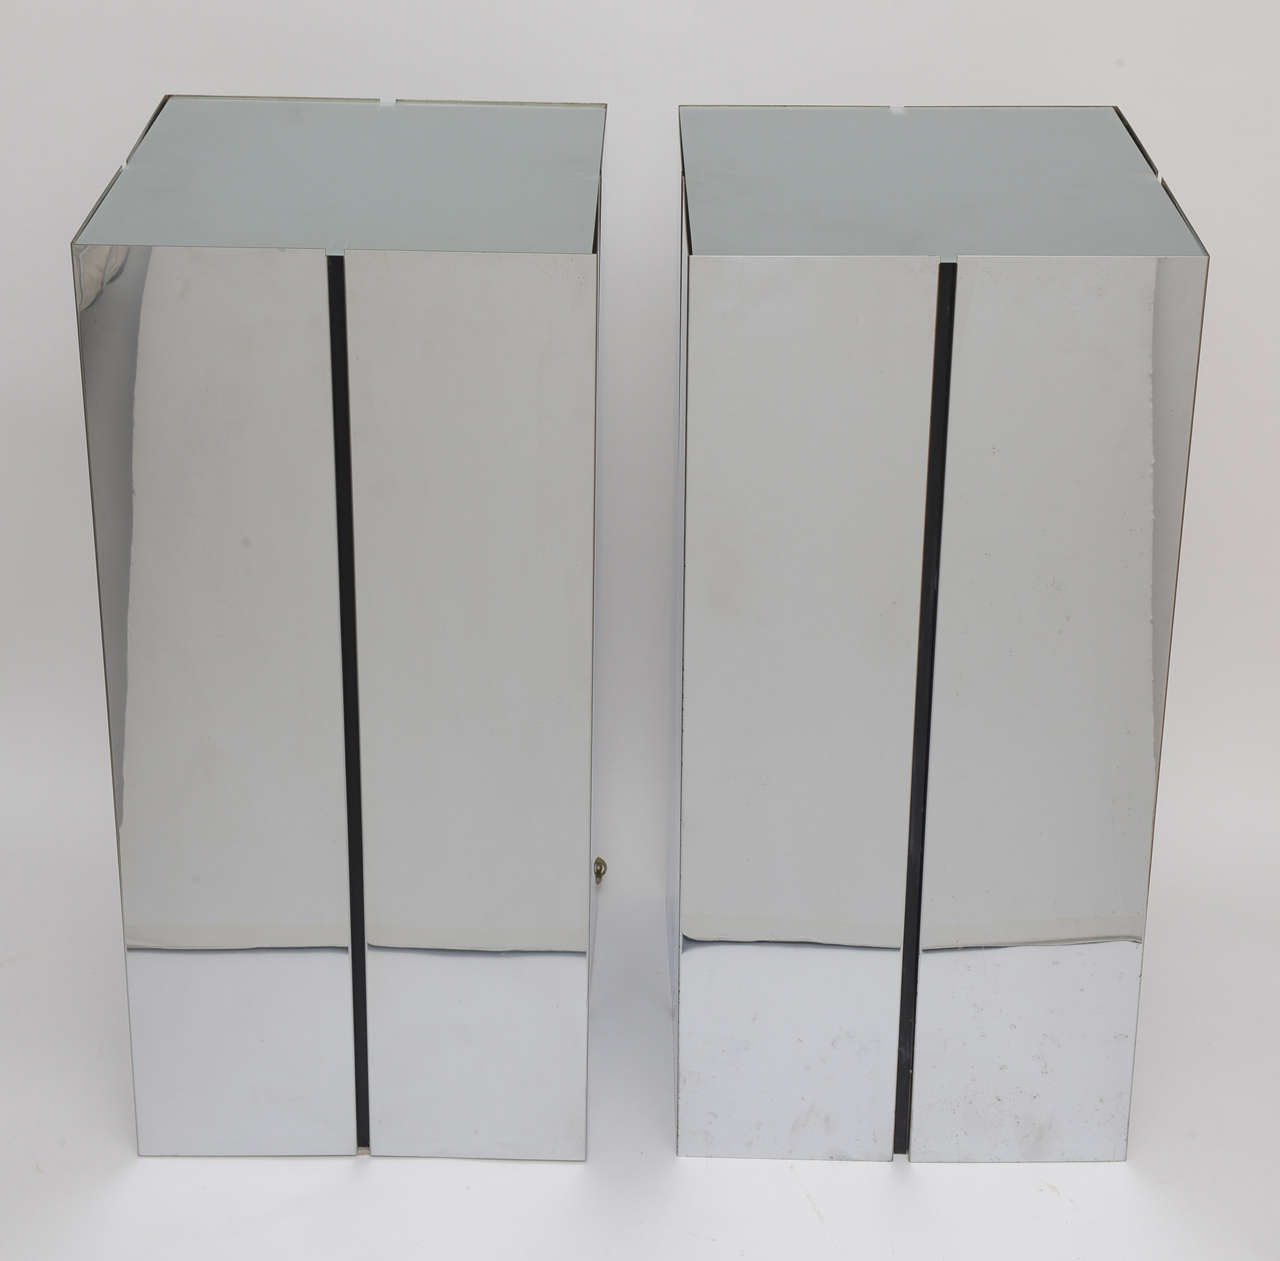 Pair of chromed steel illuminated pedestals with frosted glass tops designed by Neal Small for George Kovacs.  Note: One of the glass tops has a small chip on the underside, which is right above one of the interior braces. See image #10  Note: